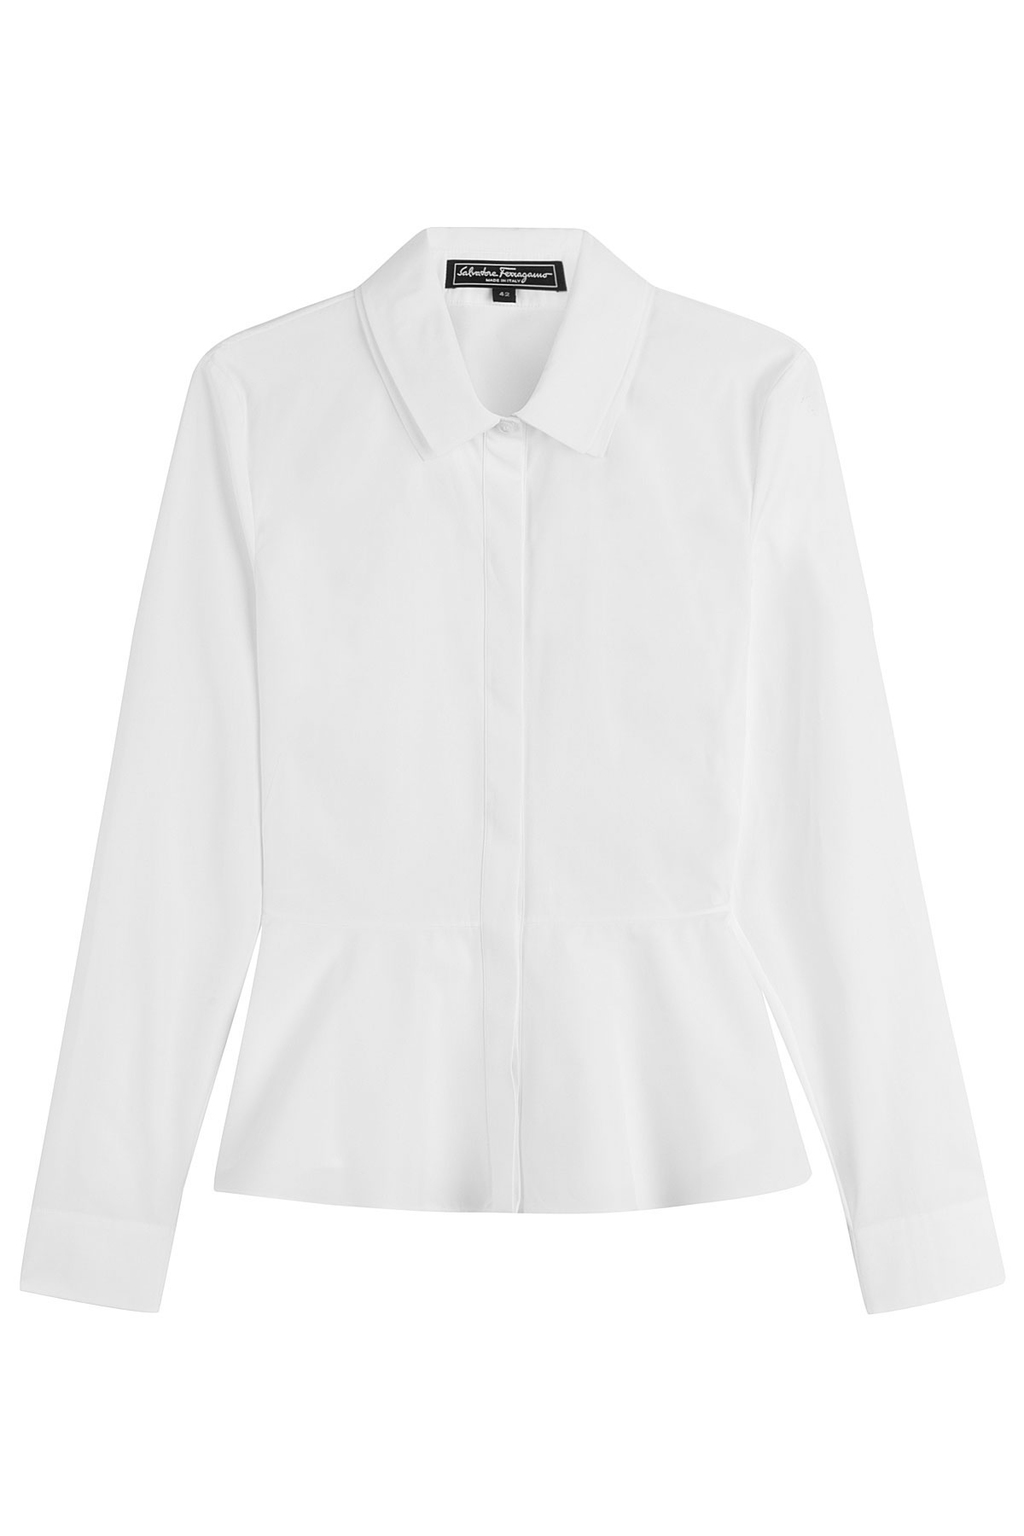 Cotton Shirt With Peplum White - neckline: shirt collar/peter pan/zip with opening; pattern: plain; style: shirt; predominant colour: ivory/cream; length: standard; fibres: cotton - 100%; fit: body skimming; sleeve length: long sleeve; sleeve style: standard; texture group: cotton feel fabrics; pattern type: fabric; occasions: creative work; season: s/s 2016; wardrobe: basic